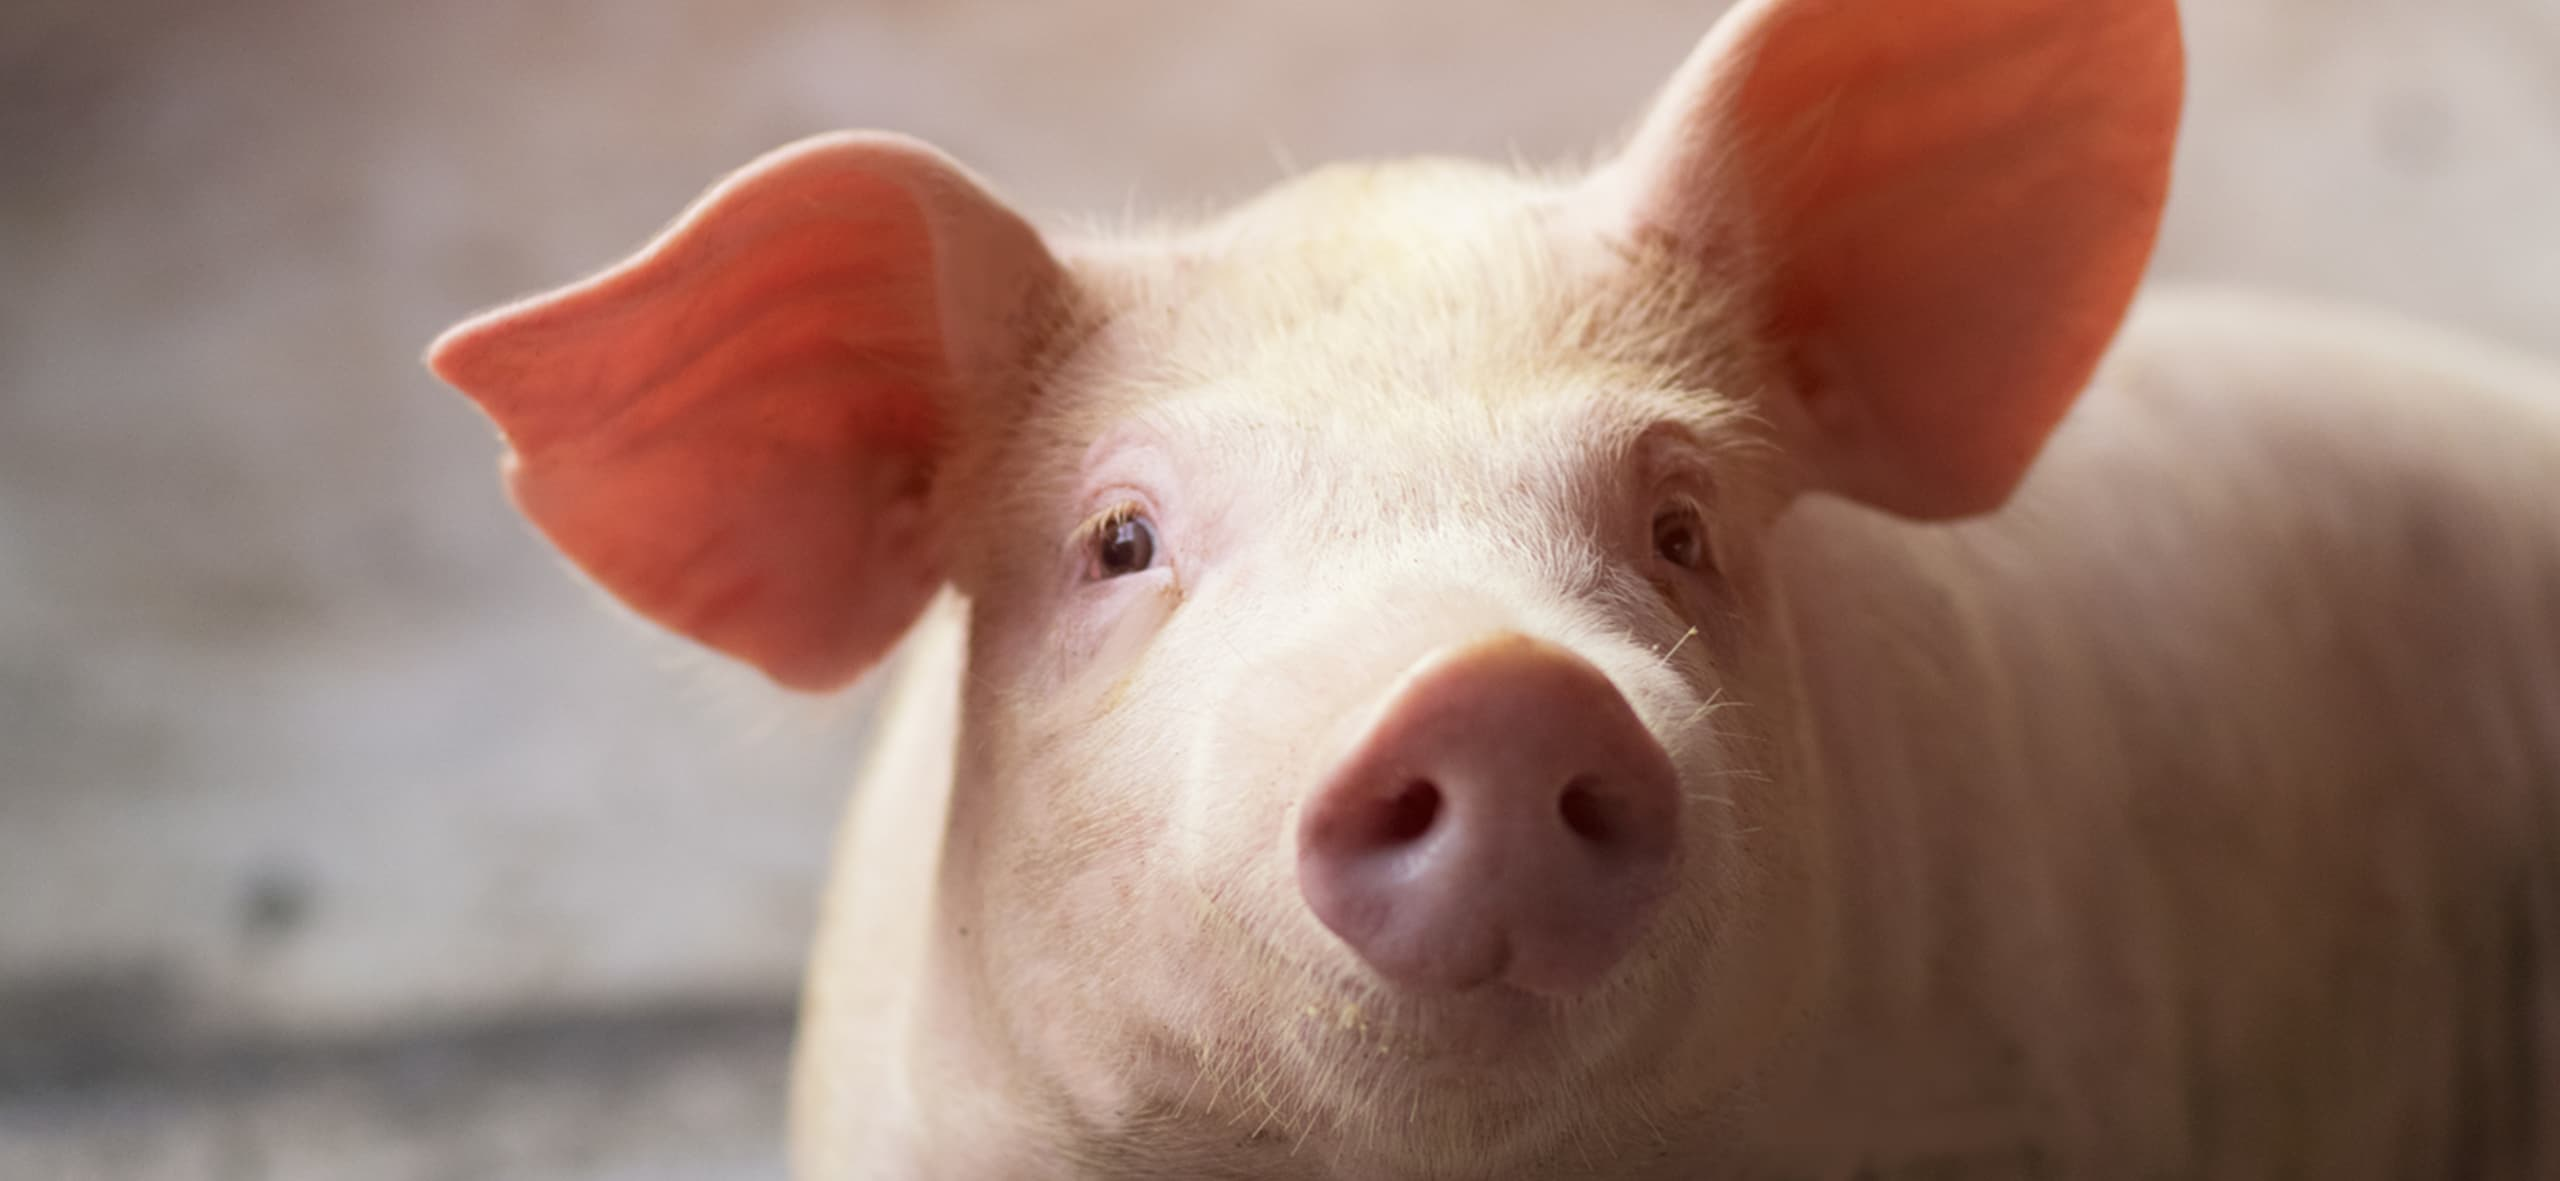 Safe Management Series: pig welfare and its impact on production rates